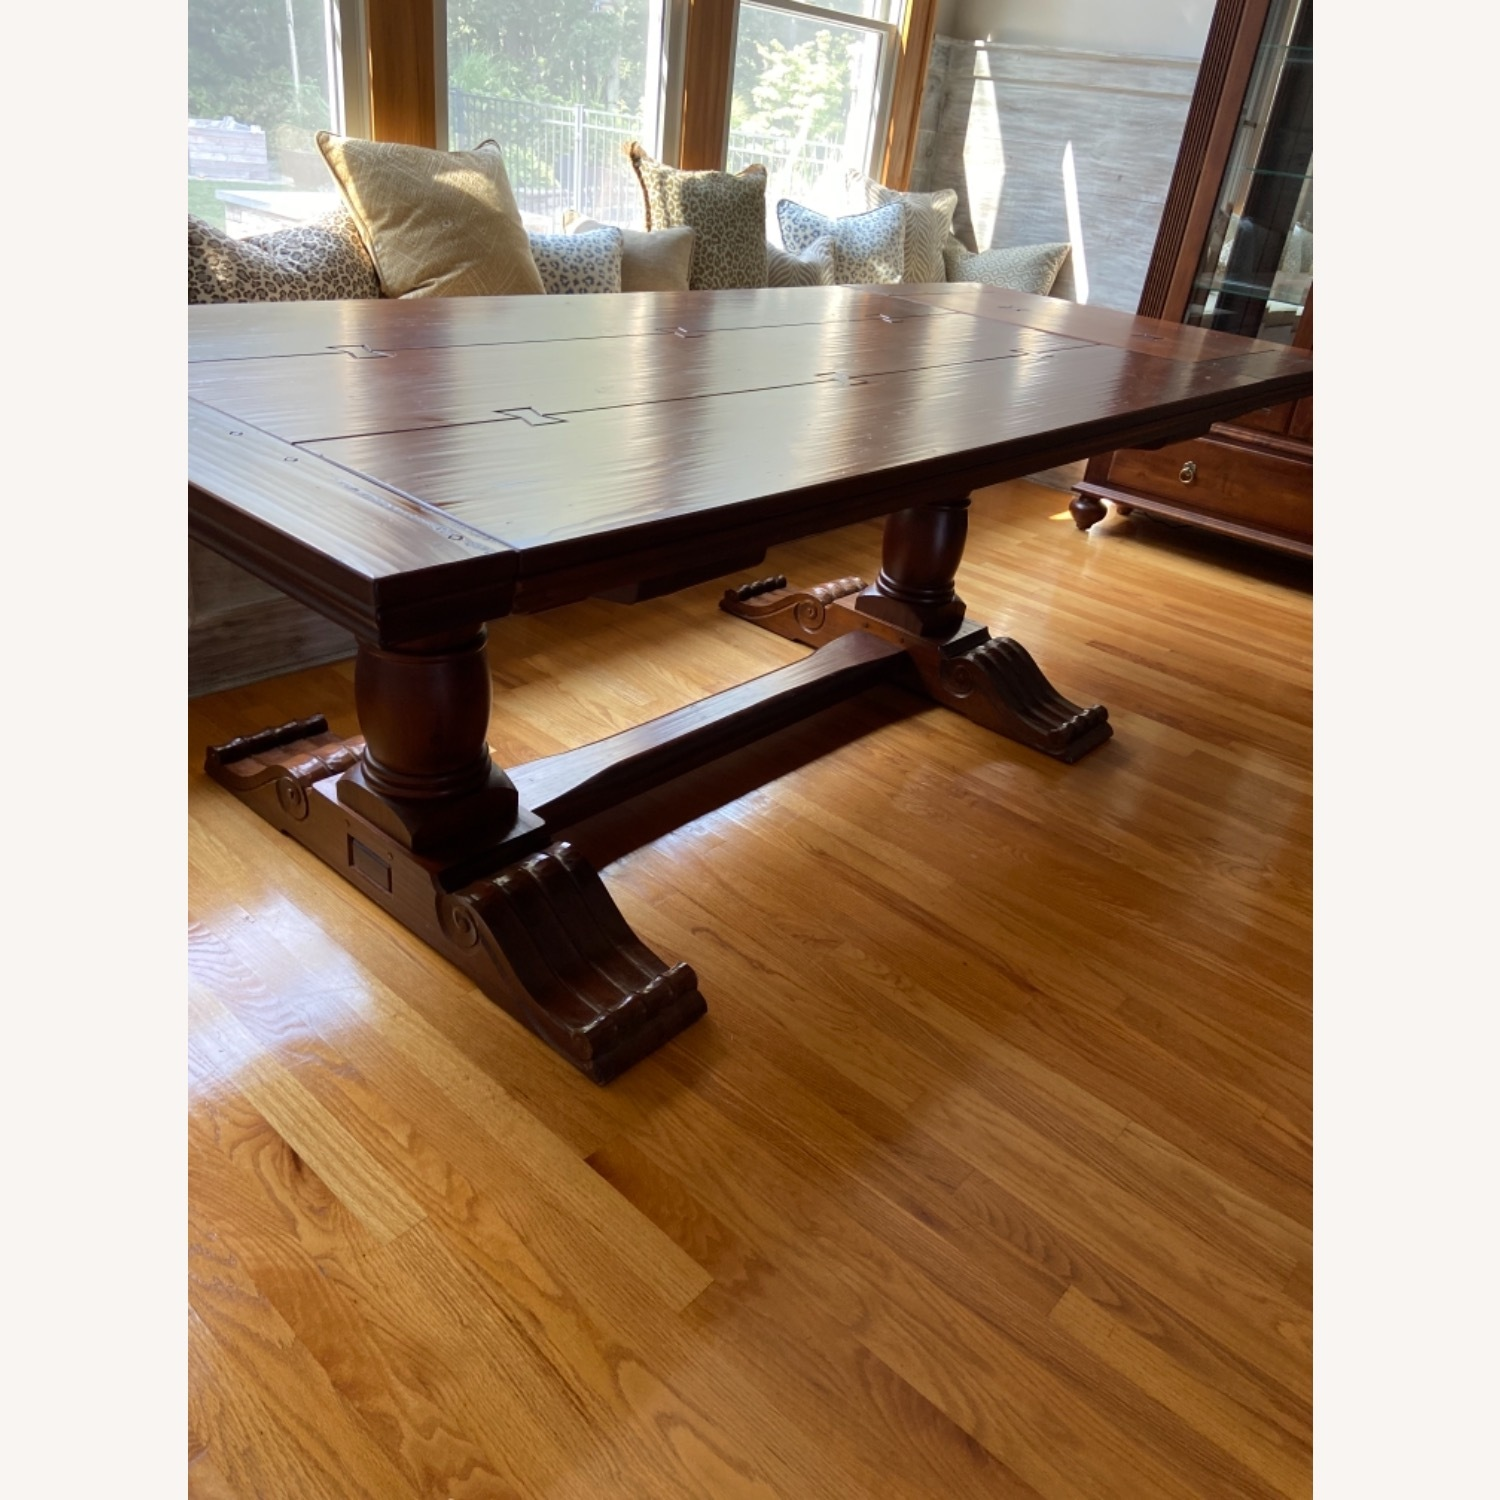 Ethan Allen Dining Table and Chairs - image-3